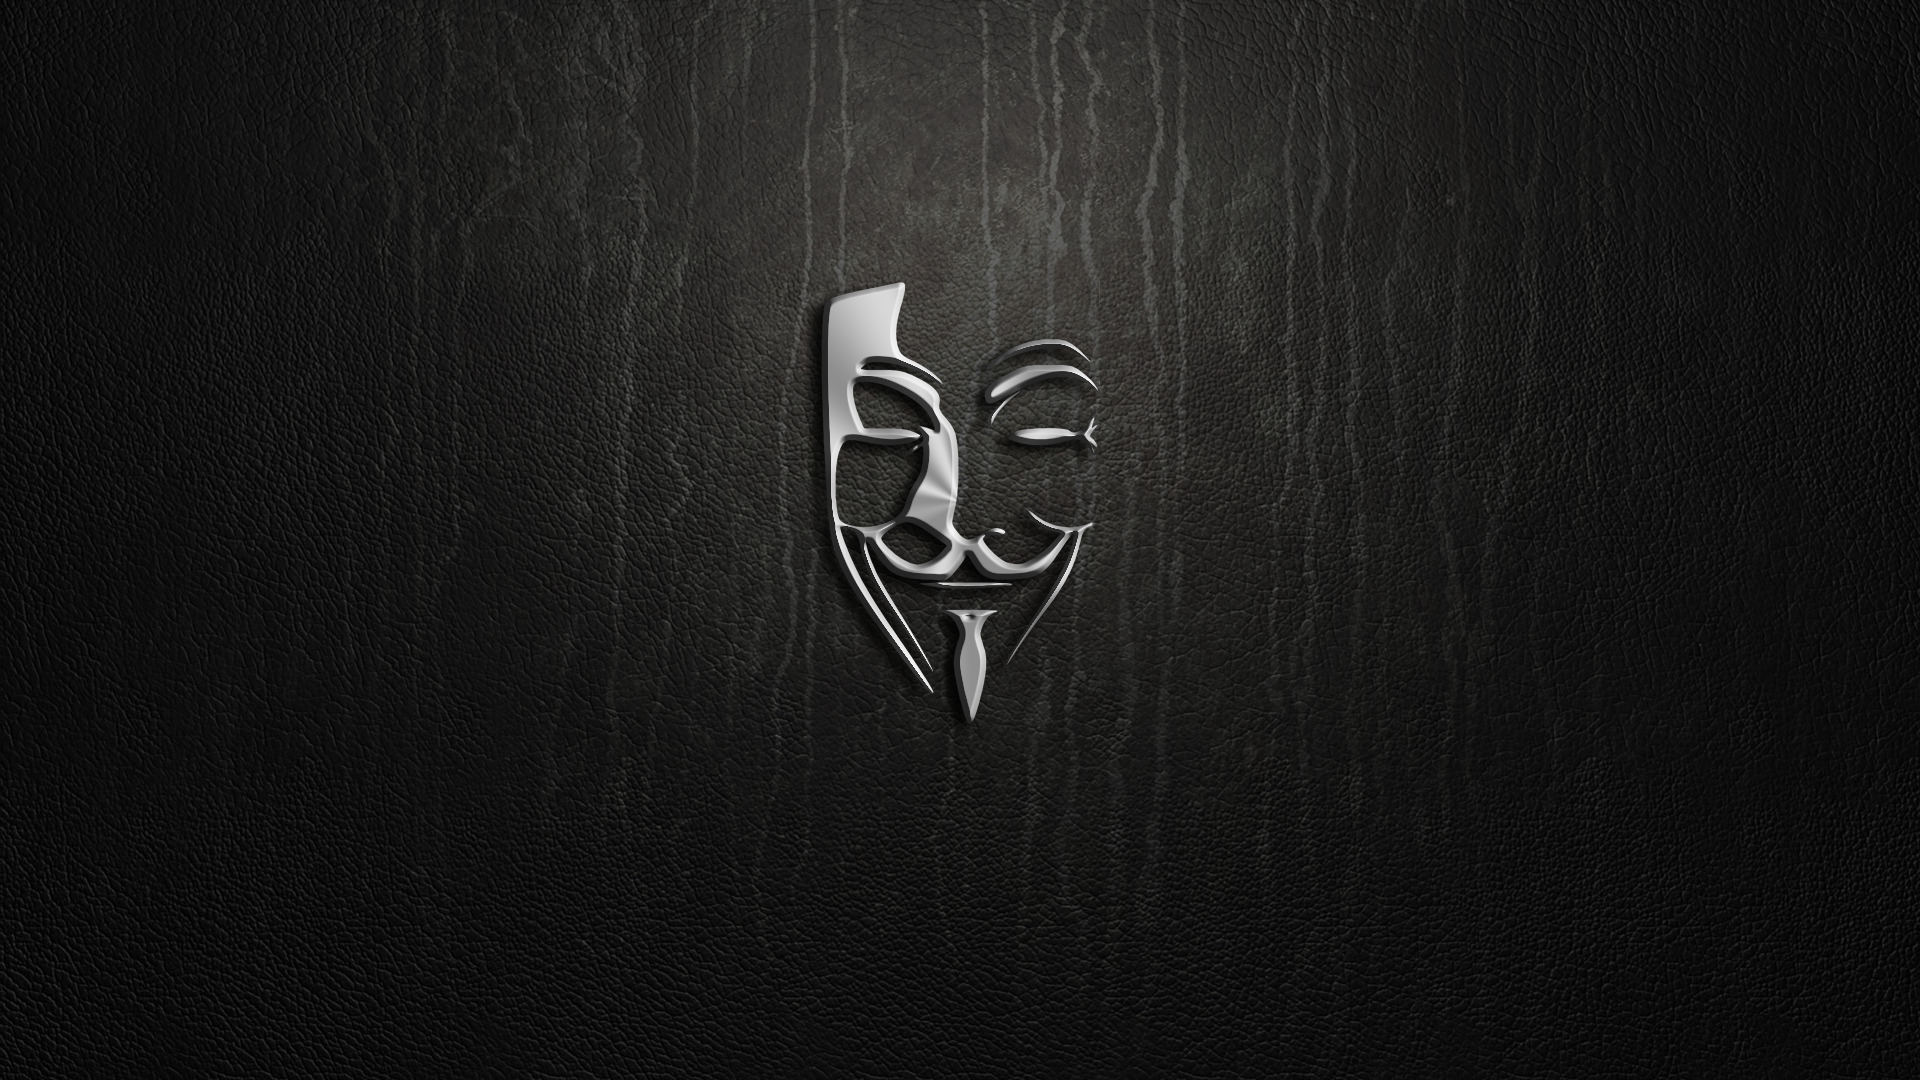 Anonymous Hd Wallpaper Background Image 1920x1080 Id 588074